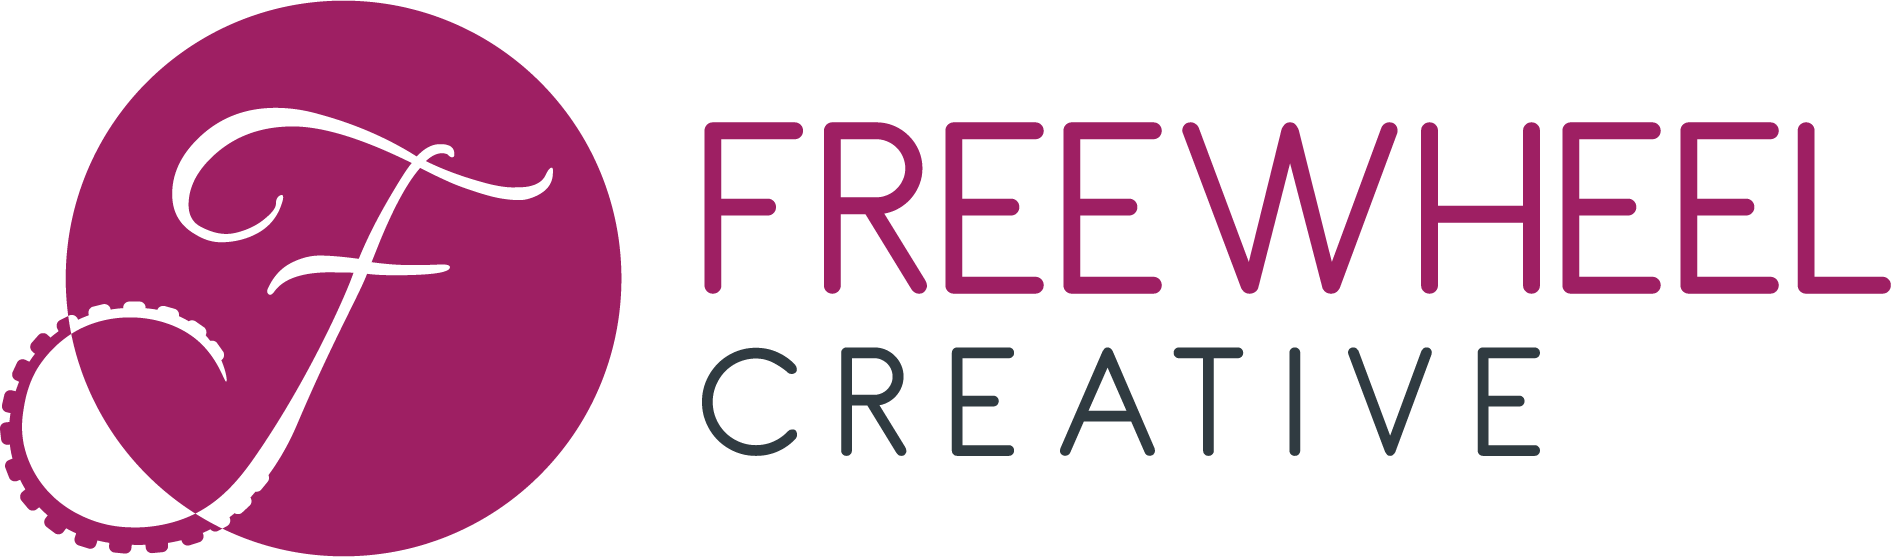 Freewheel Creative